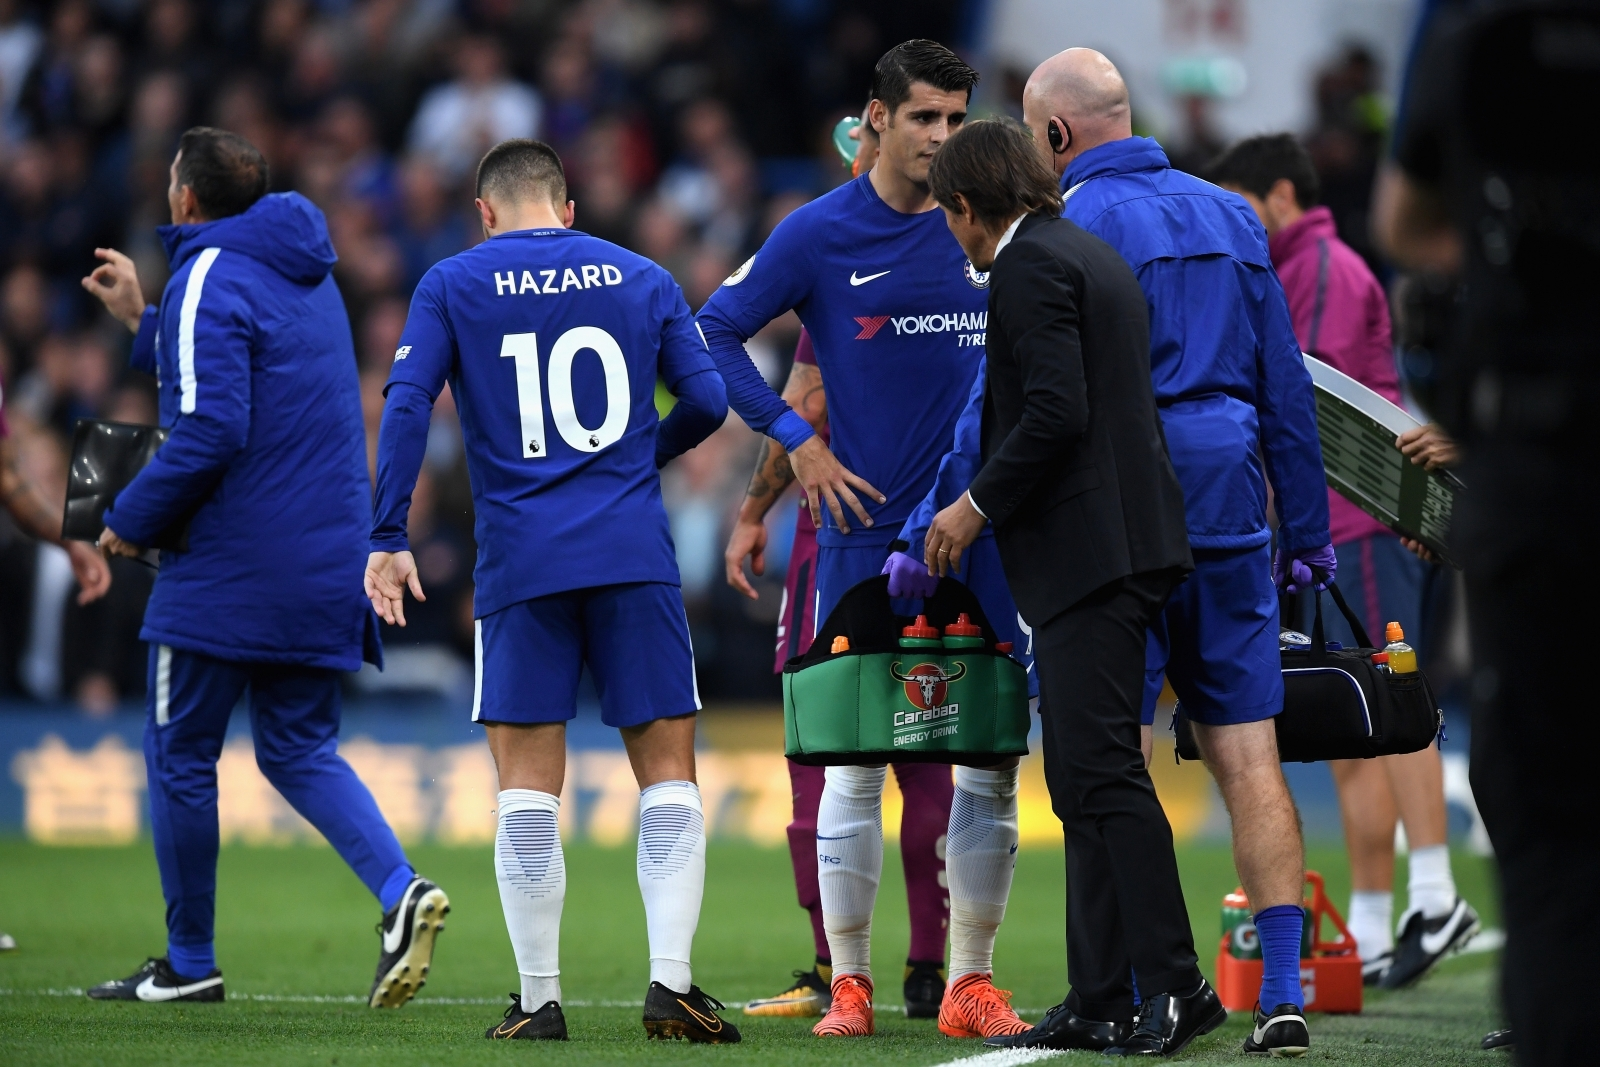 Chelsea star Alvaro Morata withdraws from Spain squad due to